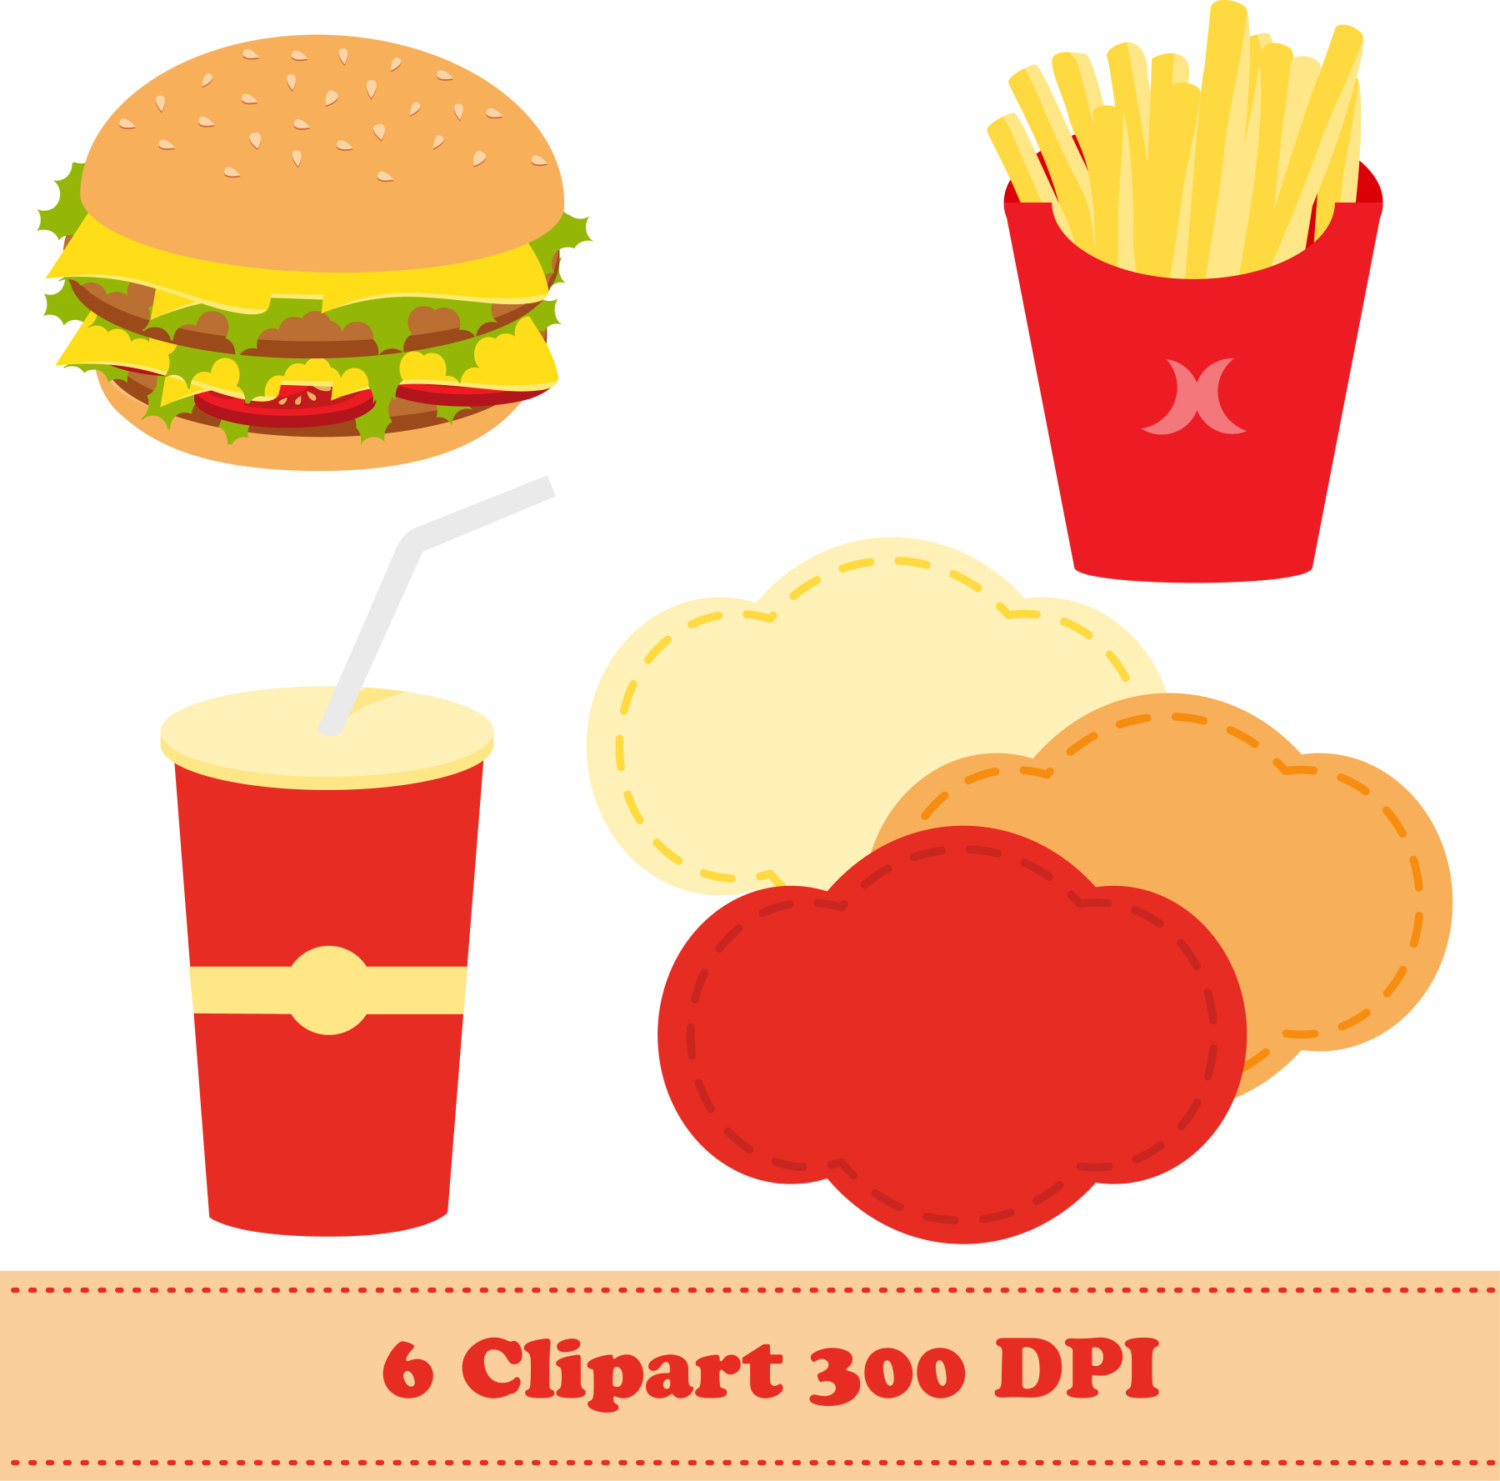 Burger clipart fried food Is Clipart file a